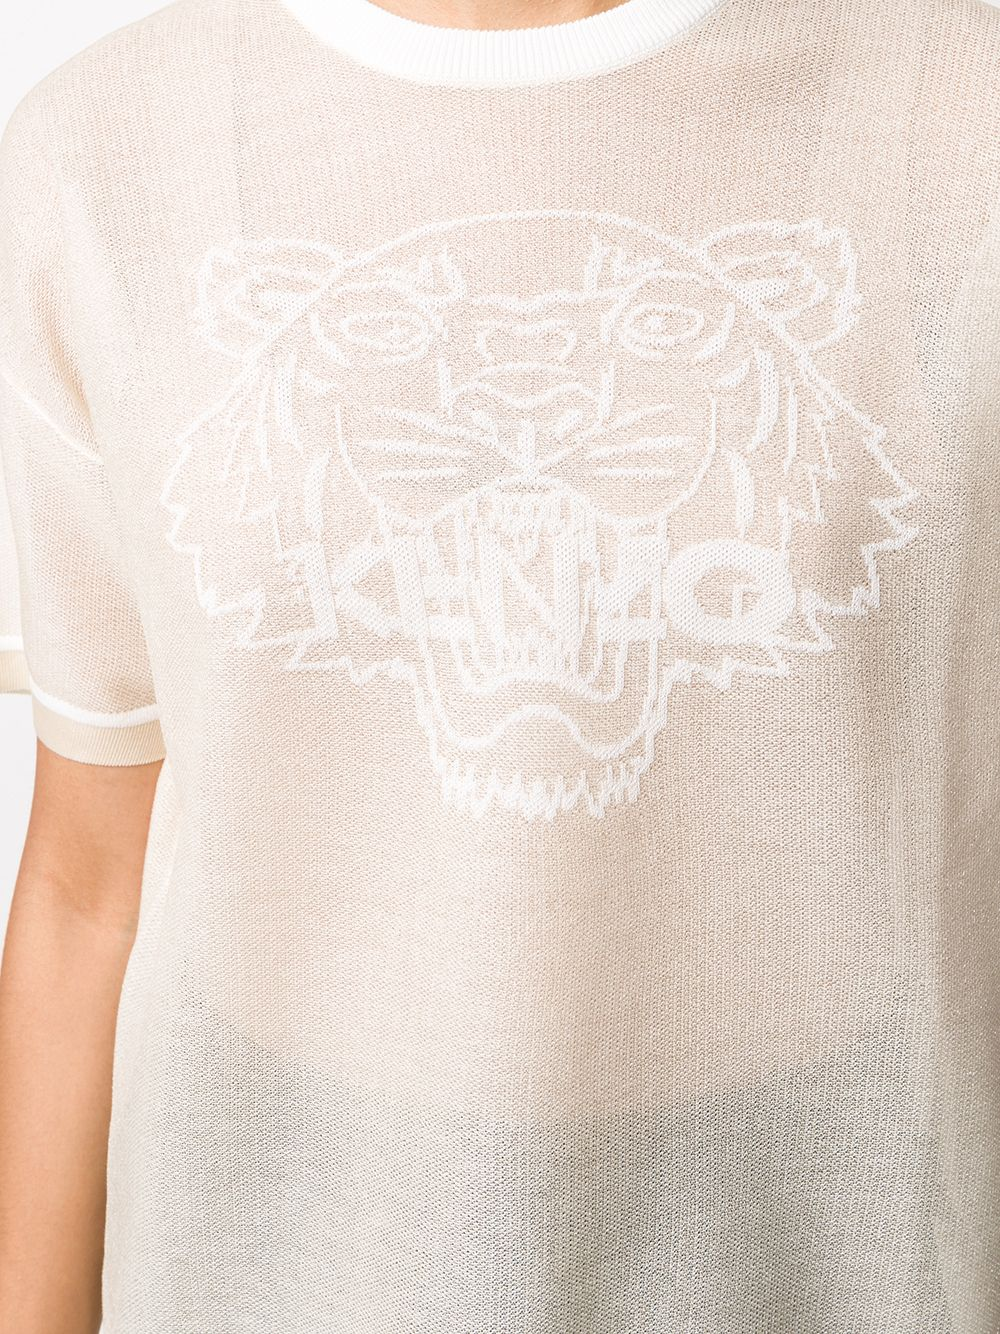 Picture of Kenzo | Tiger Head Mesh Knitted T-Shirt